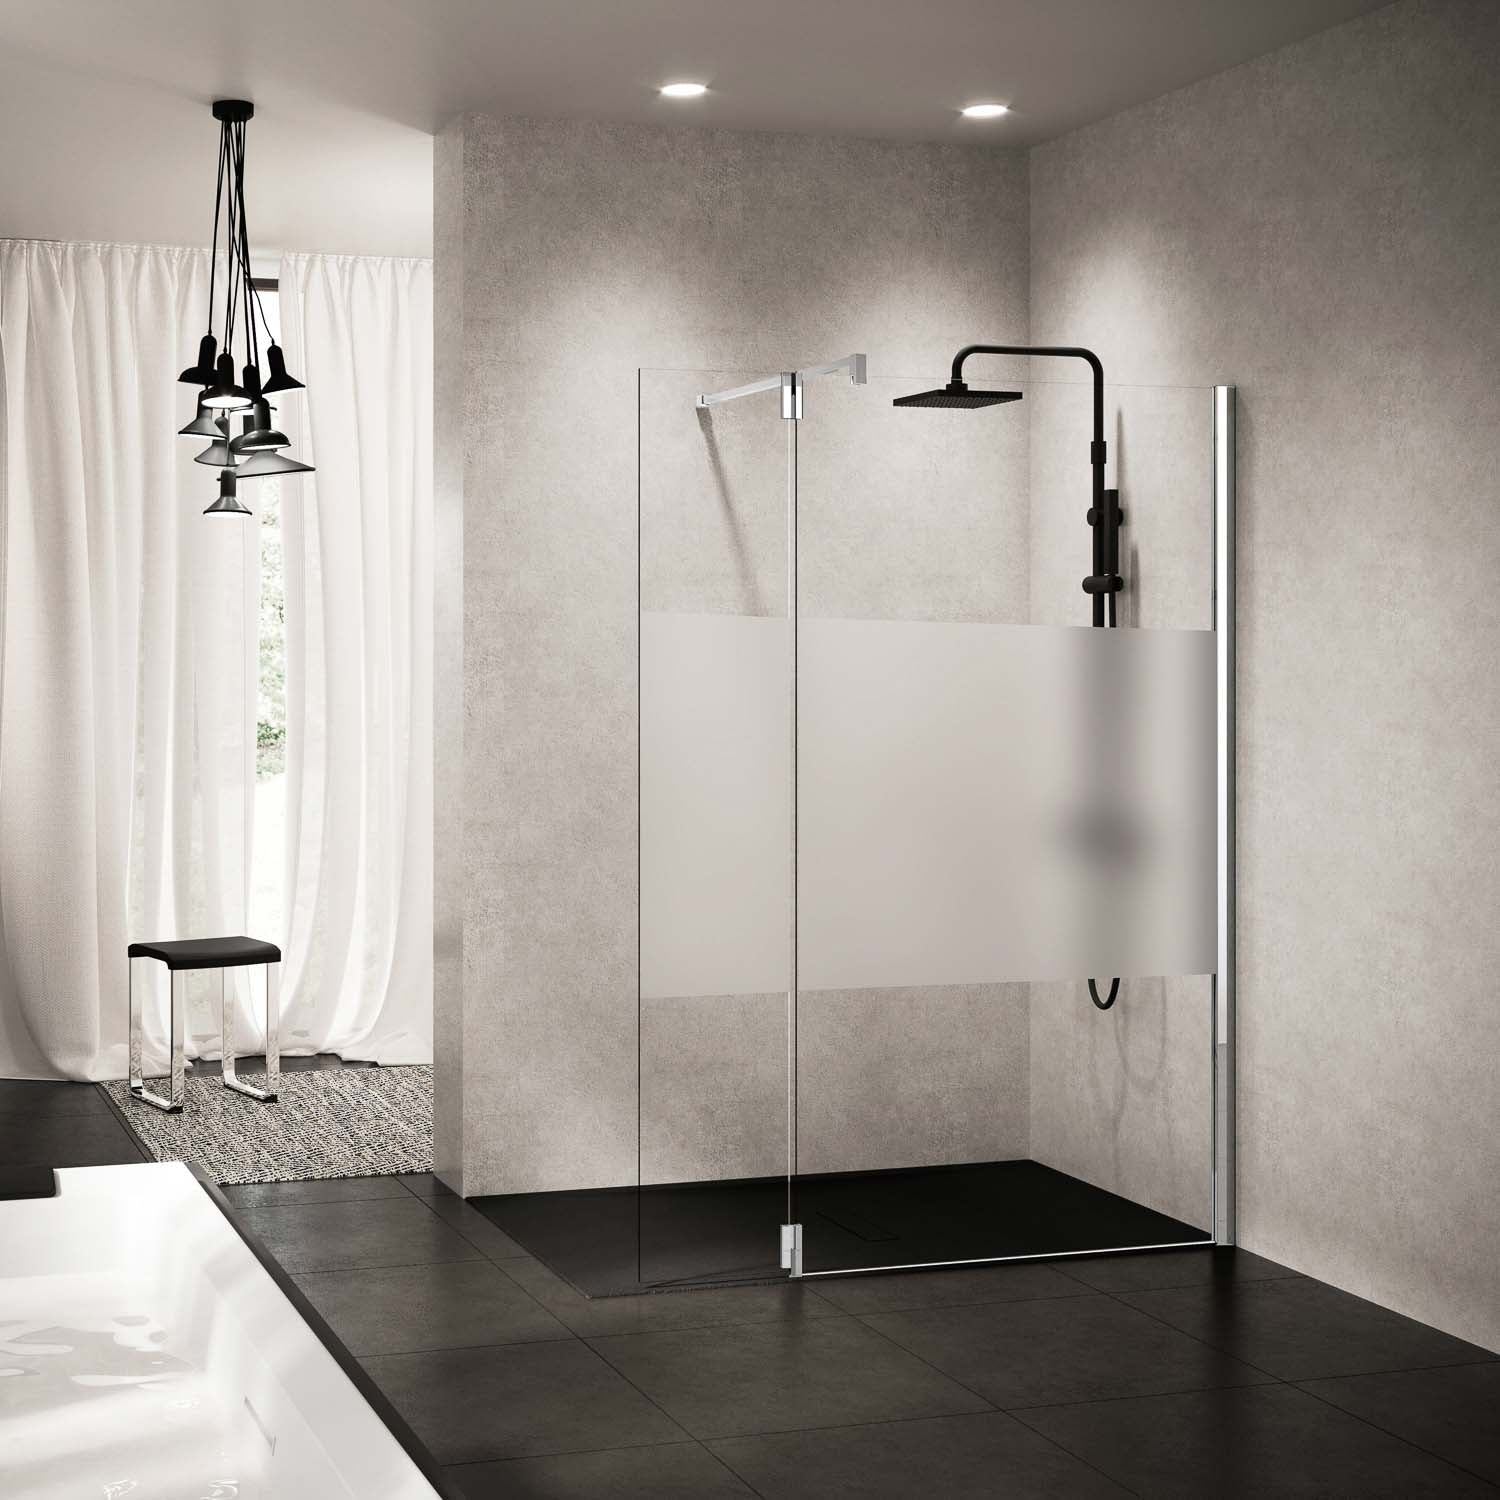 720-750mm Ergo Wet Room Screen Satin Band Glass with a chrome finish lifestyle image